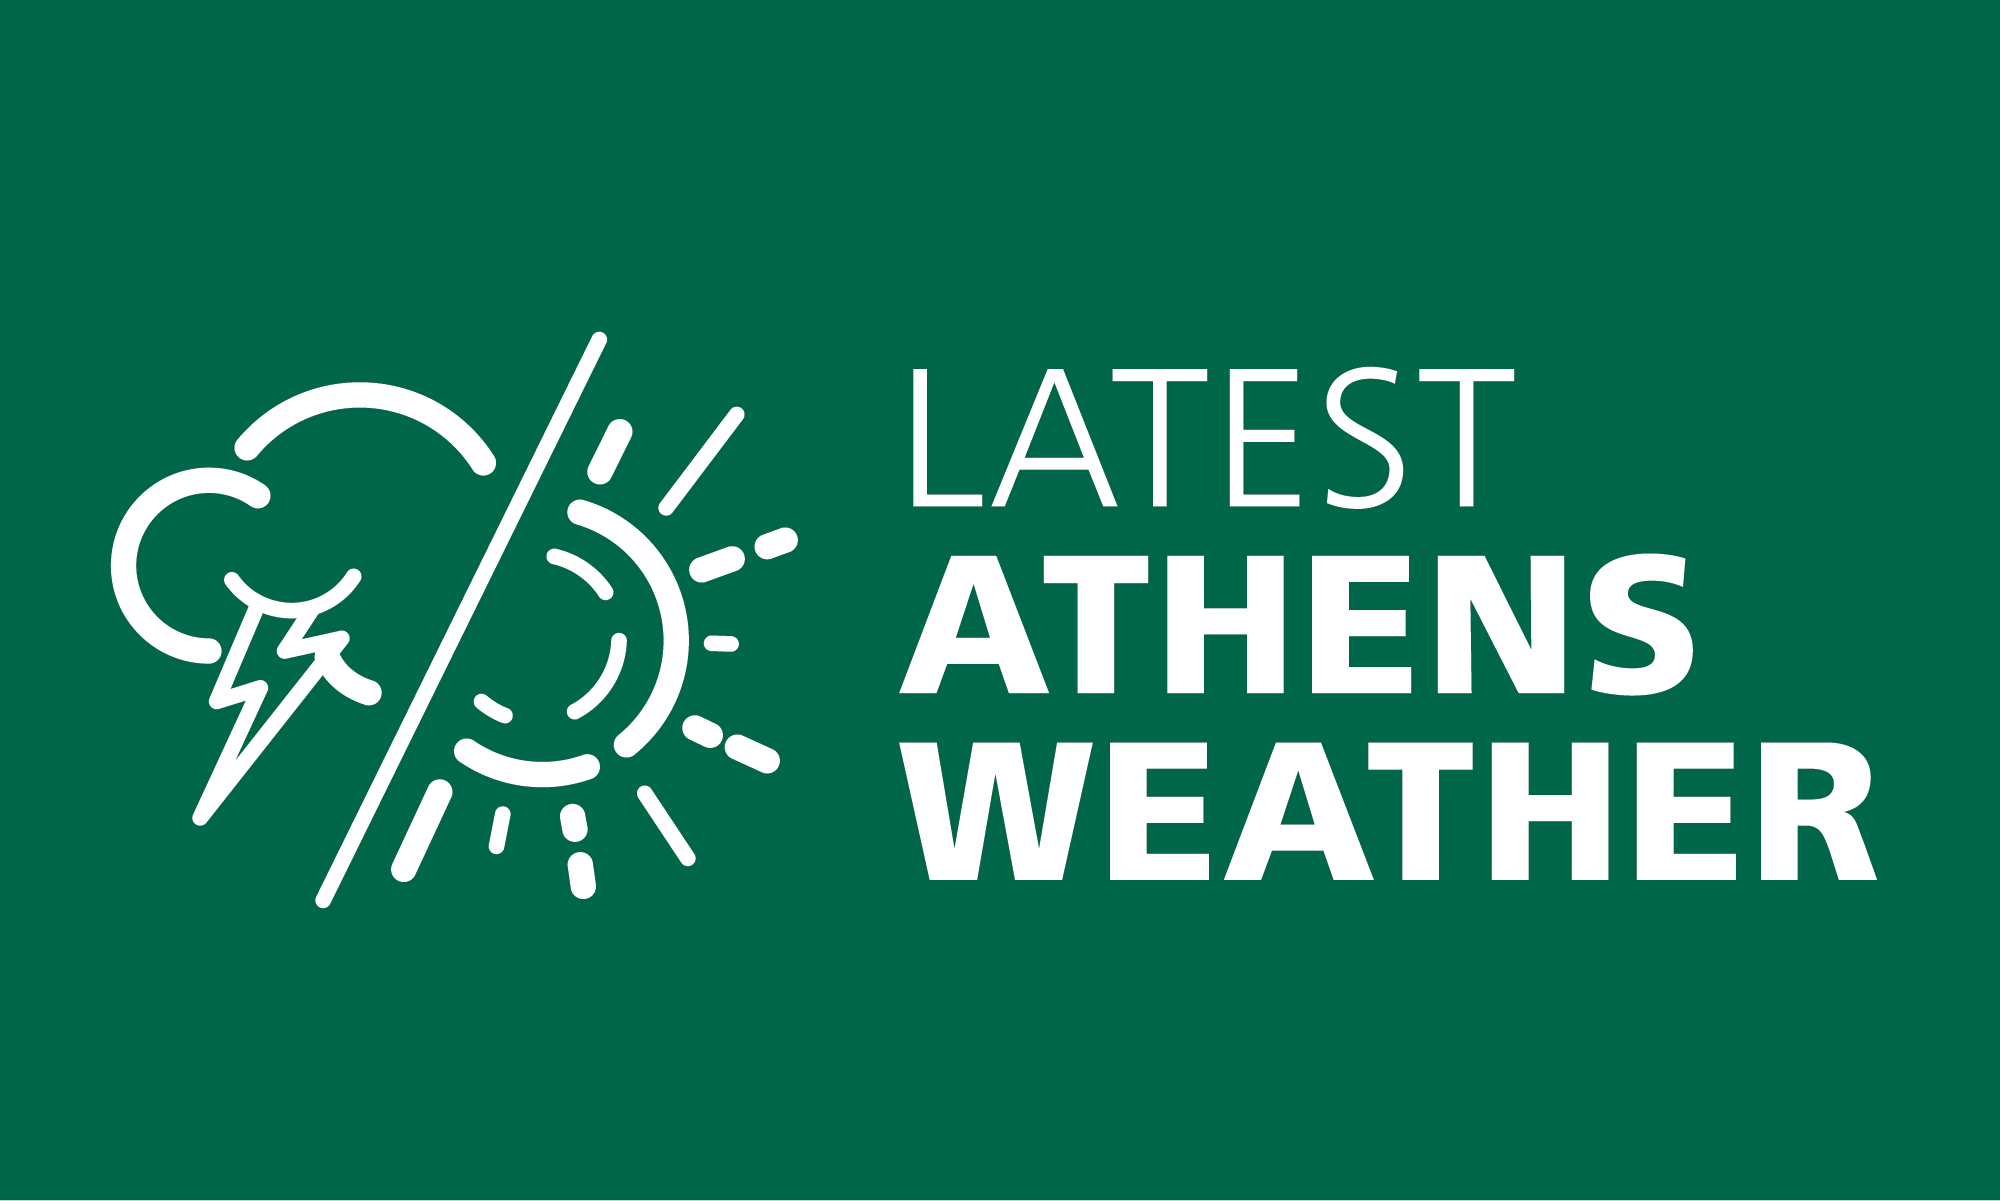 Get the most accurate current weather & forecasts for Athens!